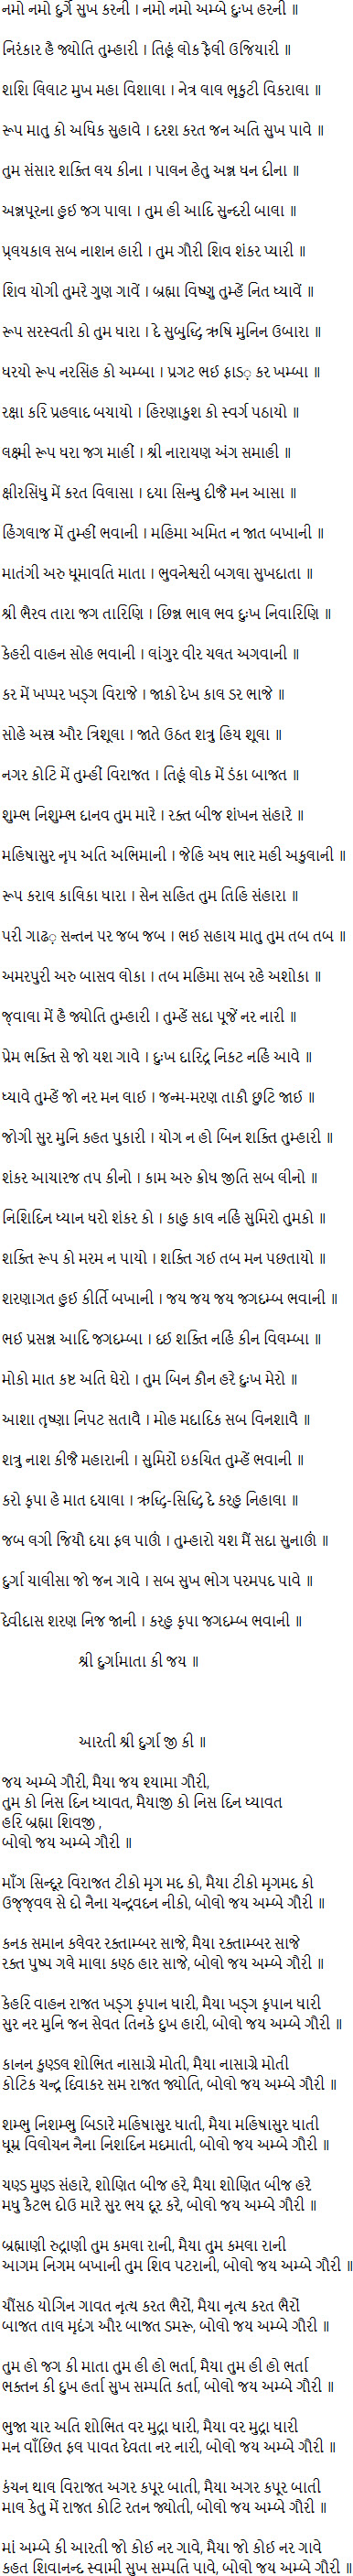 durga chalisa in gujarati durga chalisa pdf durga chalisa aarti durga chalisa download vindheshwari chalisa anuradha paudwal durga chalisa durga chalisa in english durga aarti in hindi durga chalisa mantra durga aarti lyrics durga chalisa lyrics in english durga chalisa video download shiva chalisa lyrics durga chalisa image vishnu chalisa lyrics mahakali chalisa in gujarati lyrics mahakali chalisa in gujarati pdf durga chalisa lyrics pdf vindheshwari chalisa lyrics durga chalisa mp3 gulshan kumar anuradha paudwal namo namo durge sukh